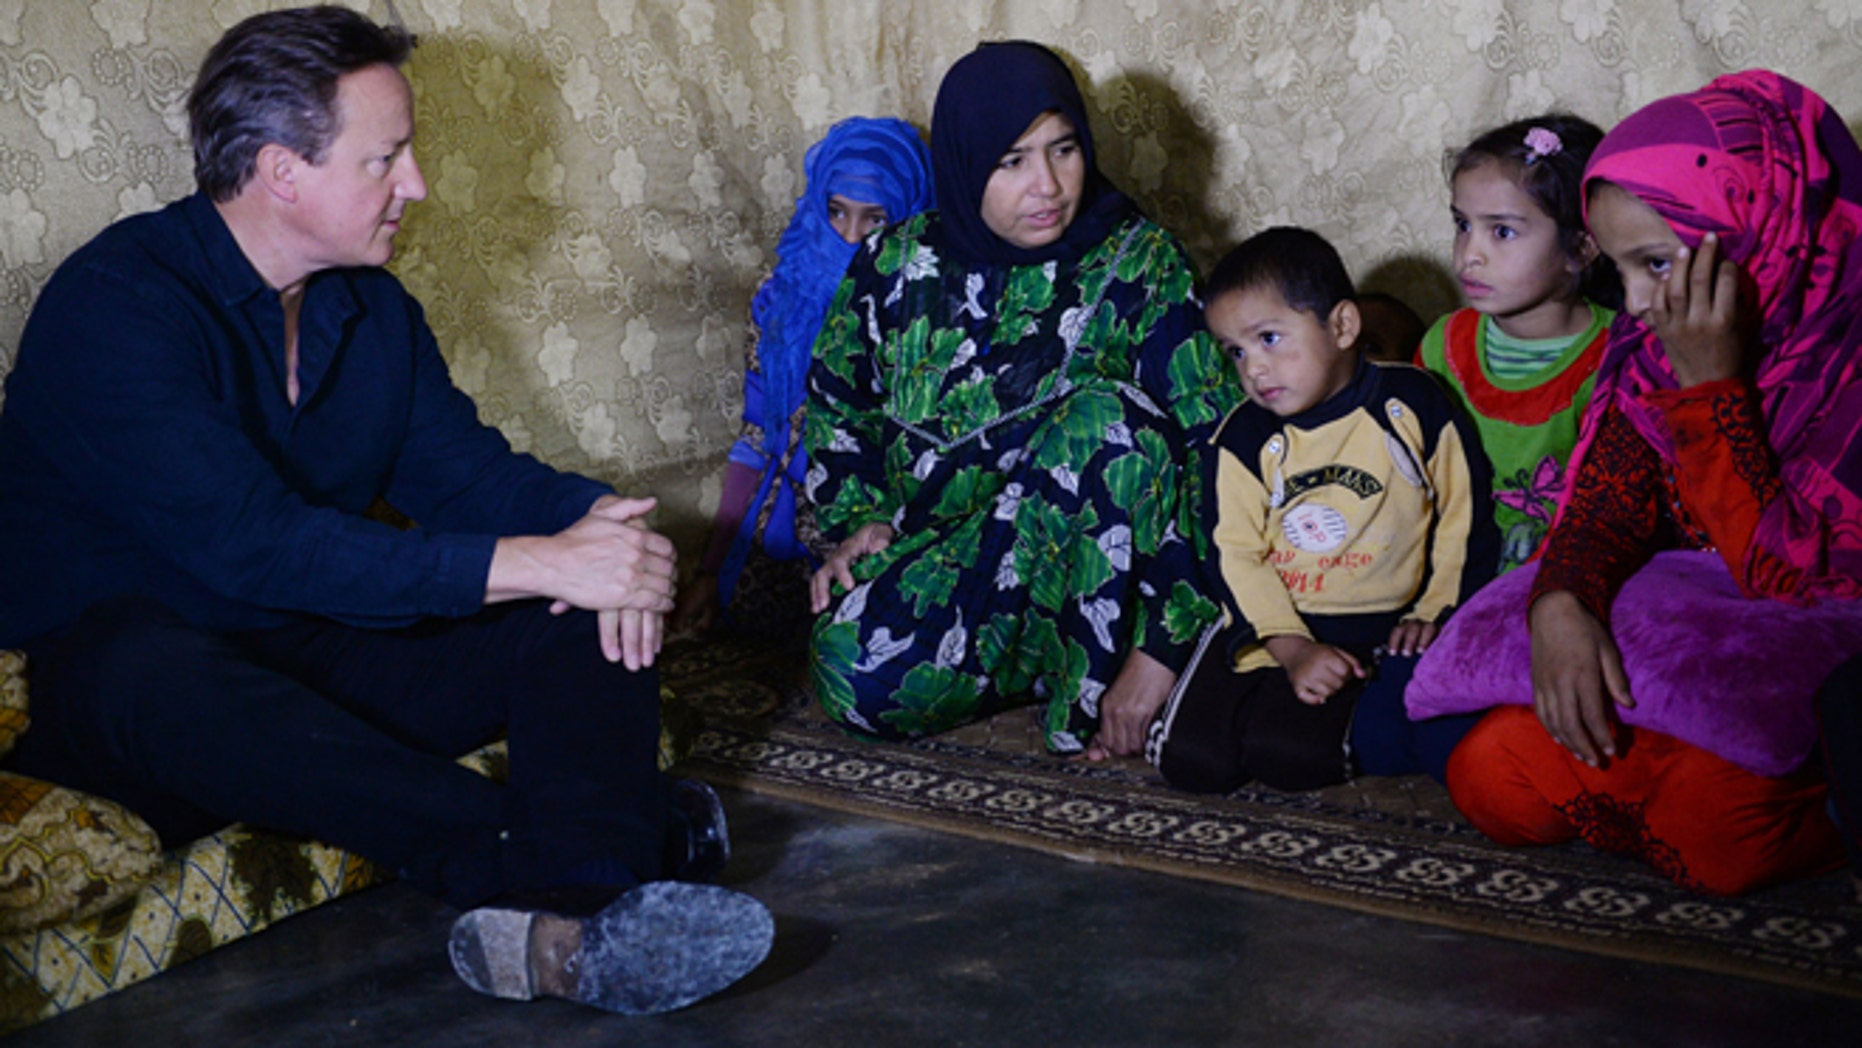 Sept. 14, 2015: Prime Minister David Cameron meets Syrian refugee families at a tented settlement camp on the Syrian - Lebanese border.